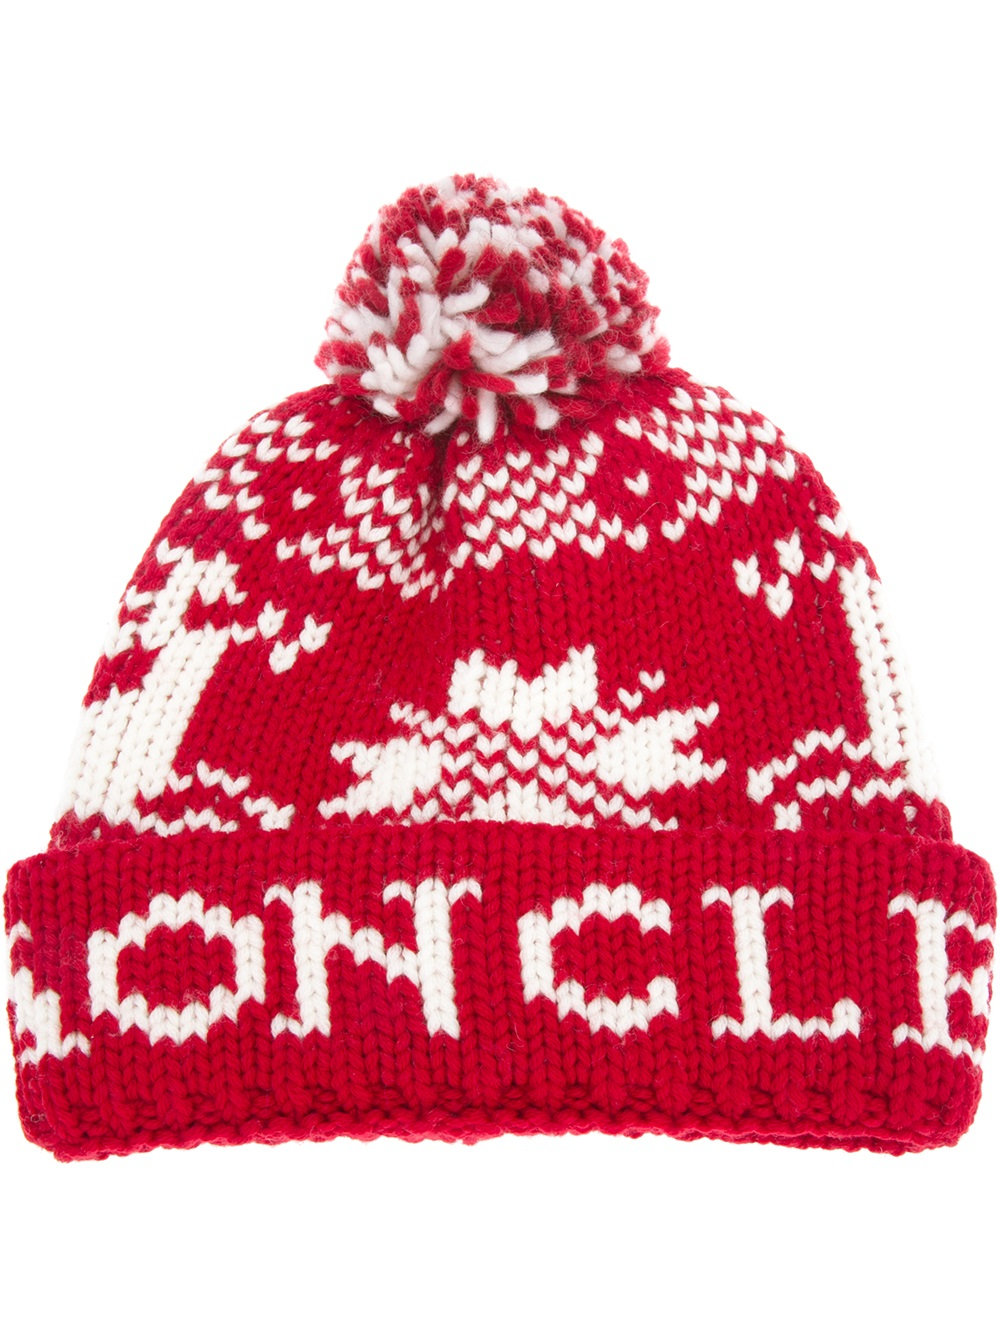 ... amazon 23b4e ef372 Lyst - Moncler Fair Isle Beanie Hat in Red for Men  ... 212aa4d4ace2